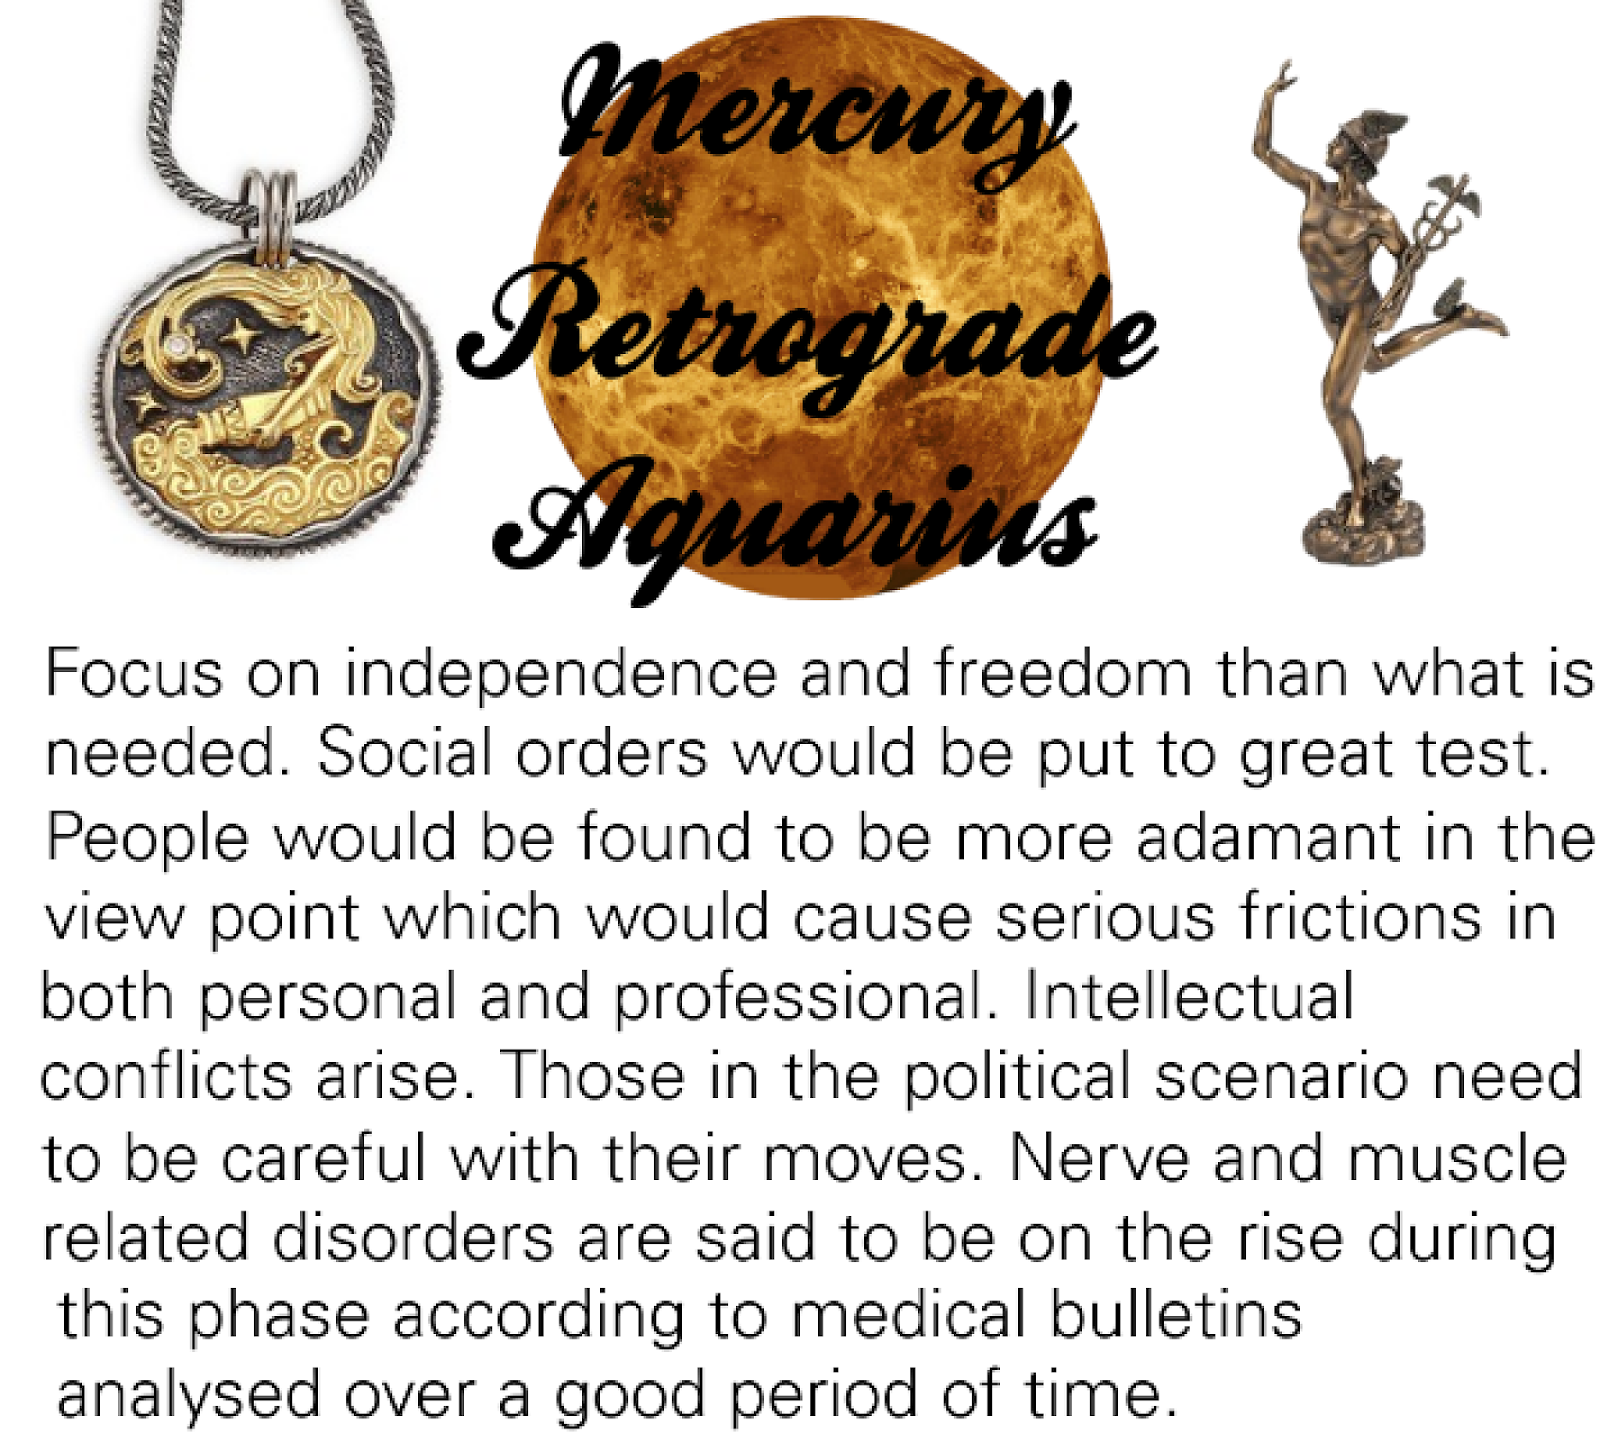 Mercury Retrograde Through the Signs - Astrological Counsel